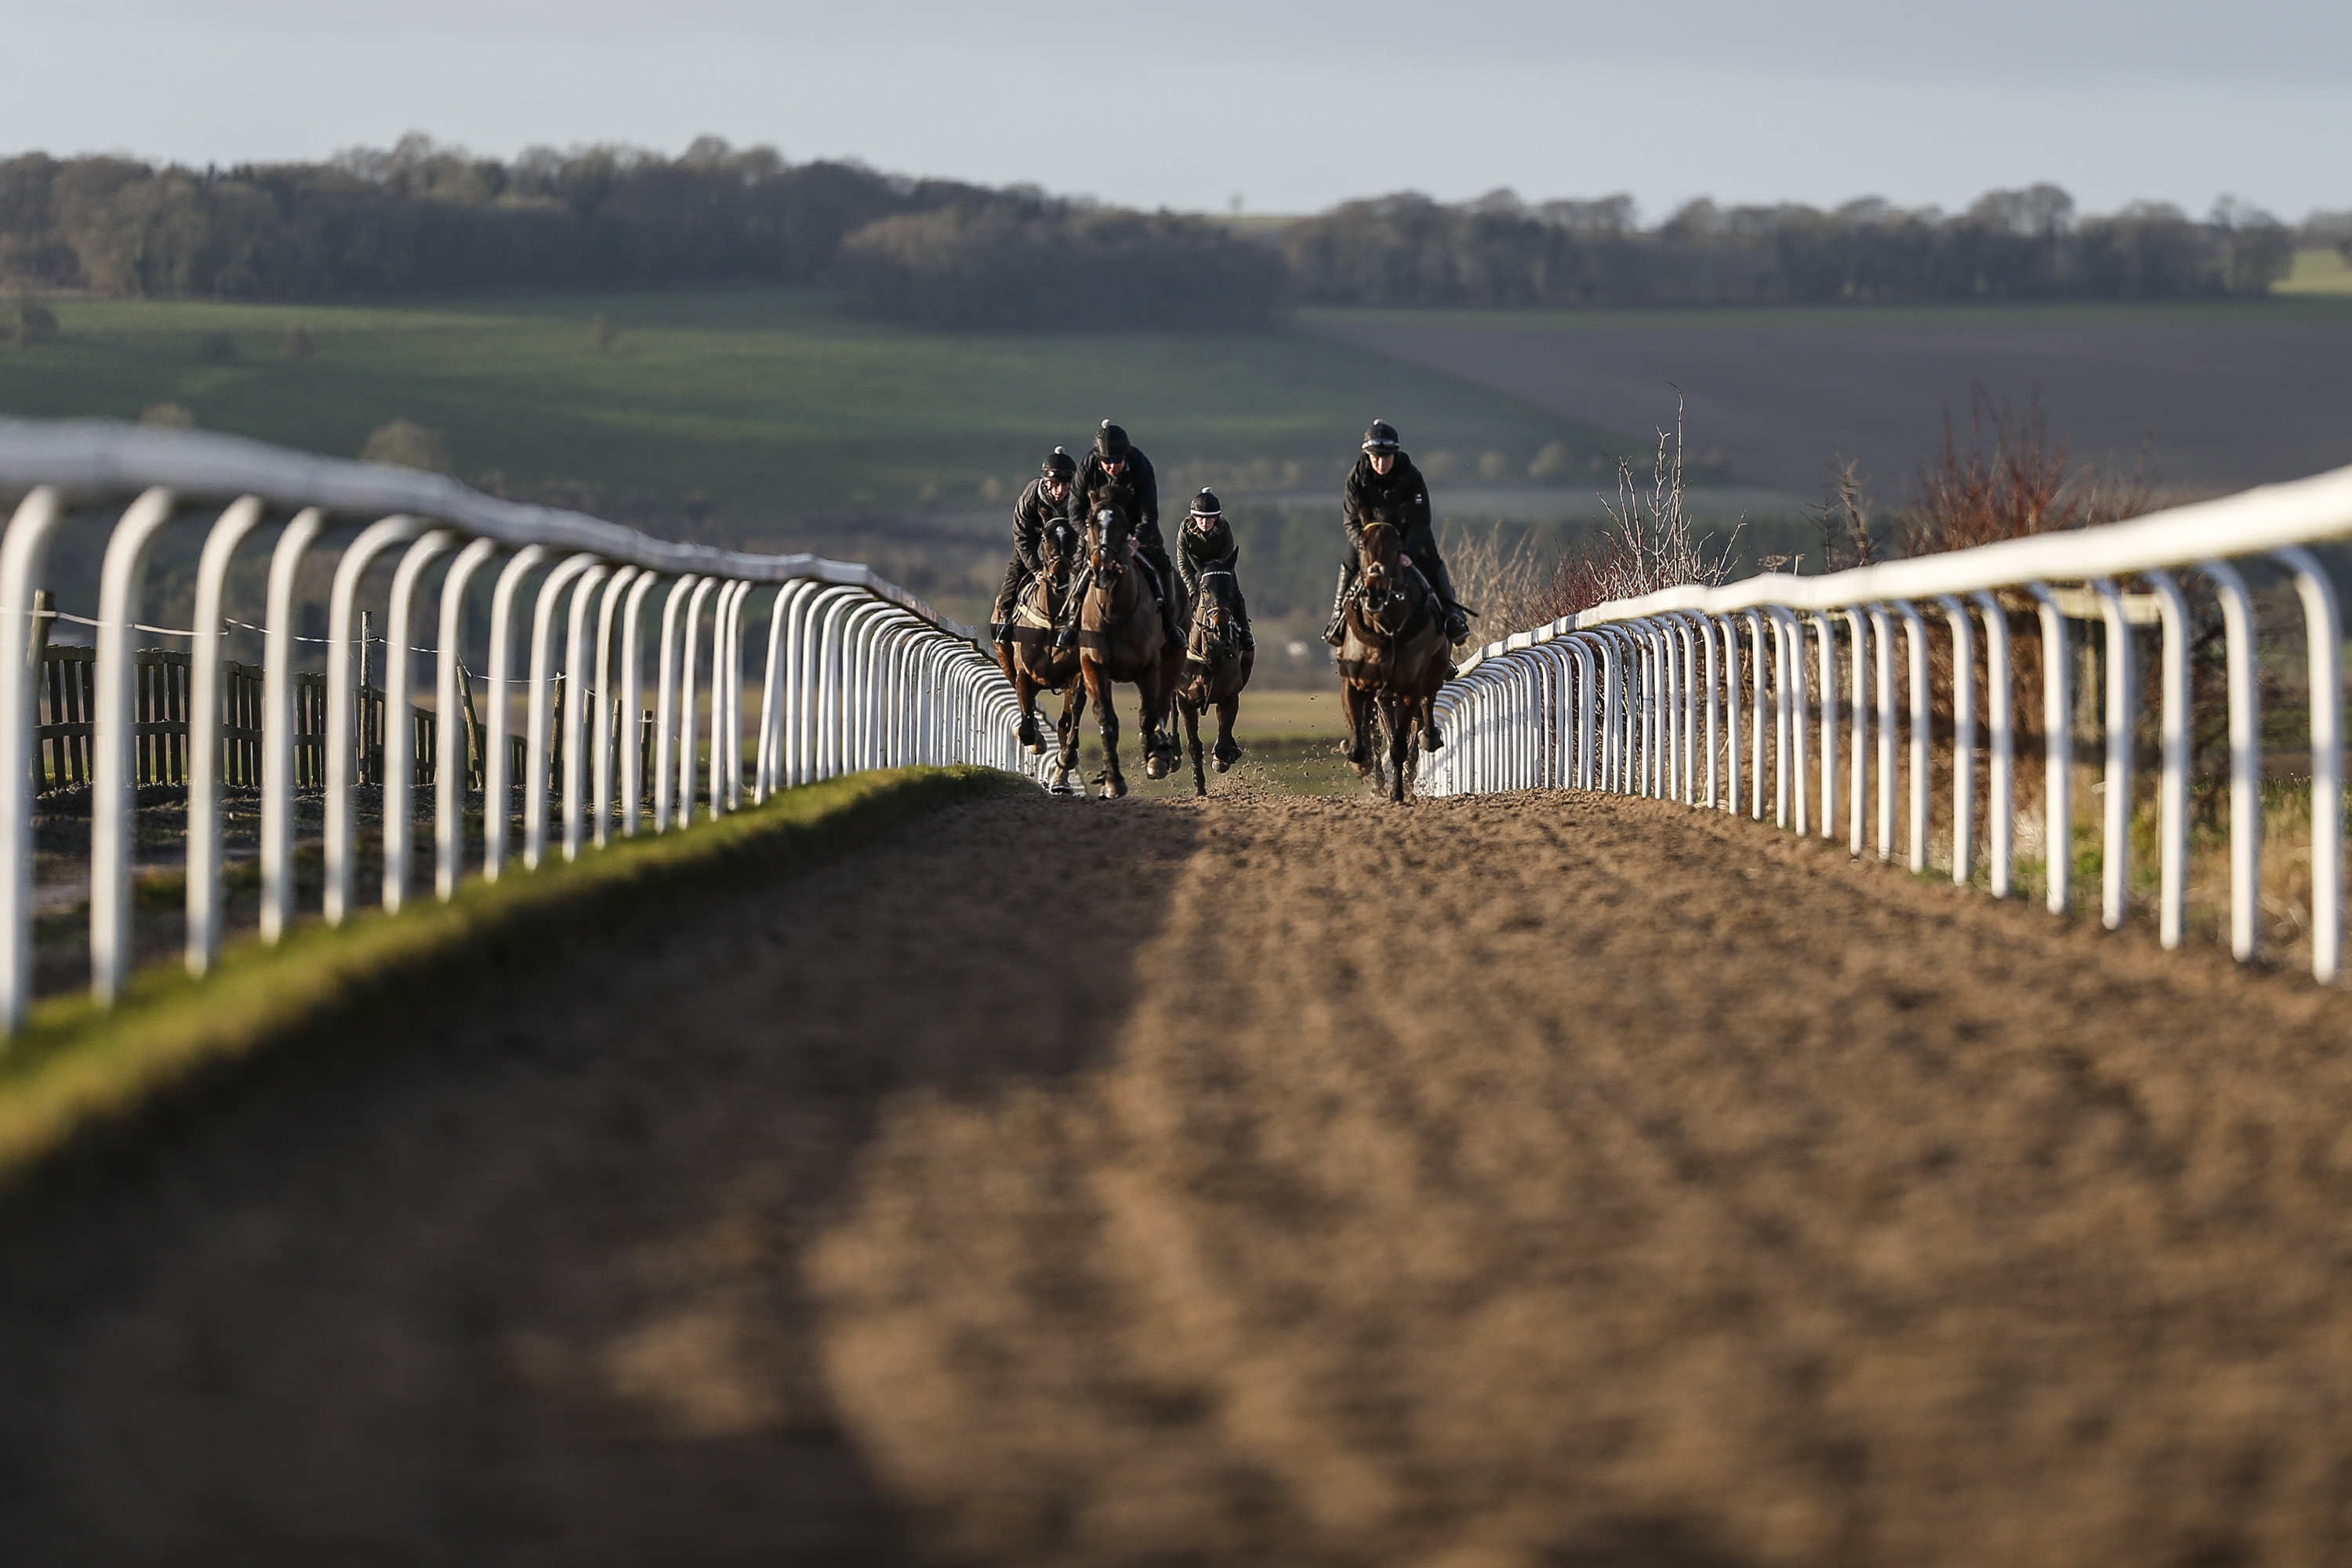 LAMBOURN, ENGLAND - JANUARY 05: Racehorse make their way up the Mandown gallops from Warren Greatrexâs Uplands yard on January 5, 2018 in Lambourn, England. (Photo by Alan Crowhurst/Getty Images)